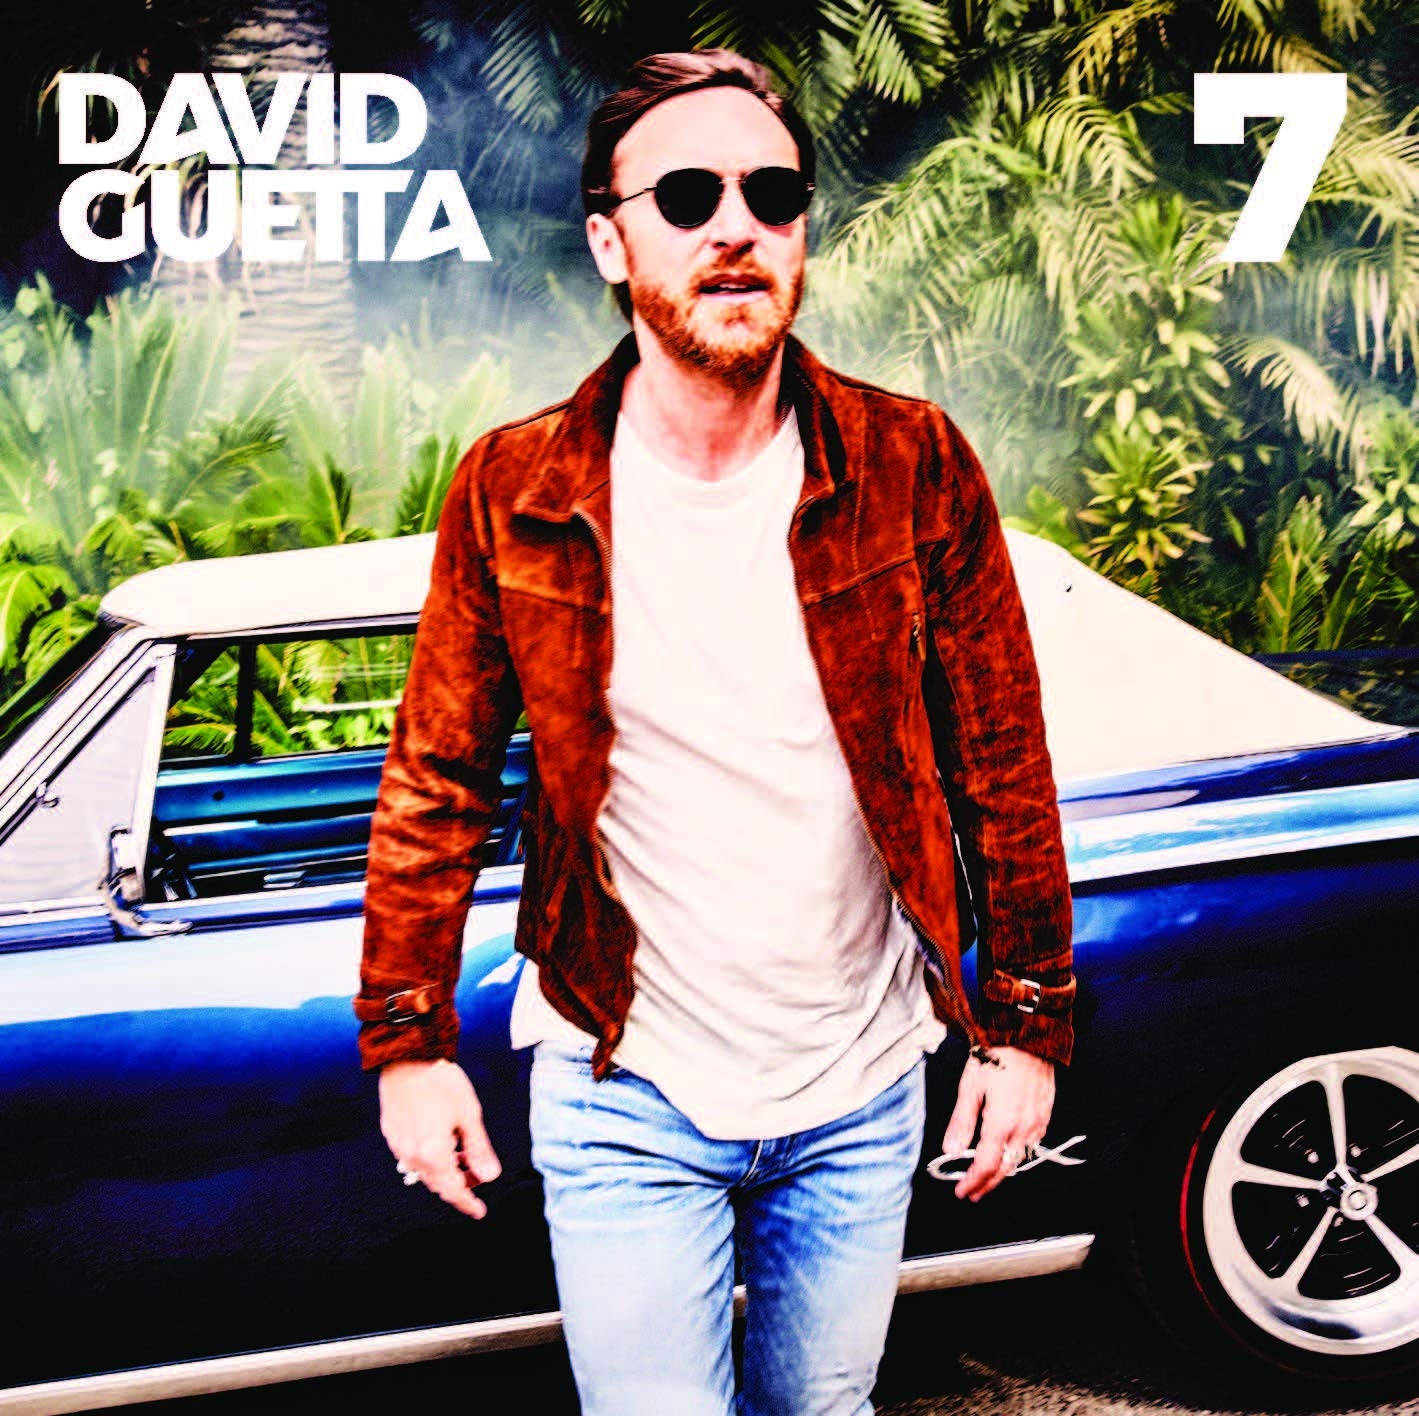 david guetta house music mp3 free download